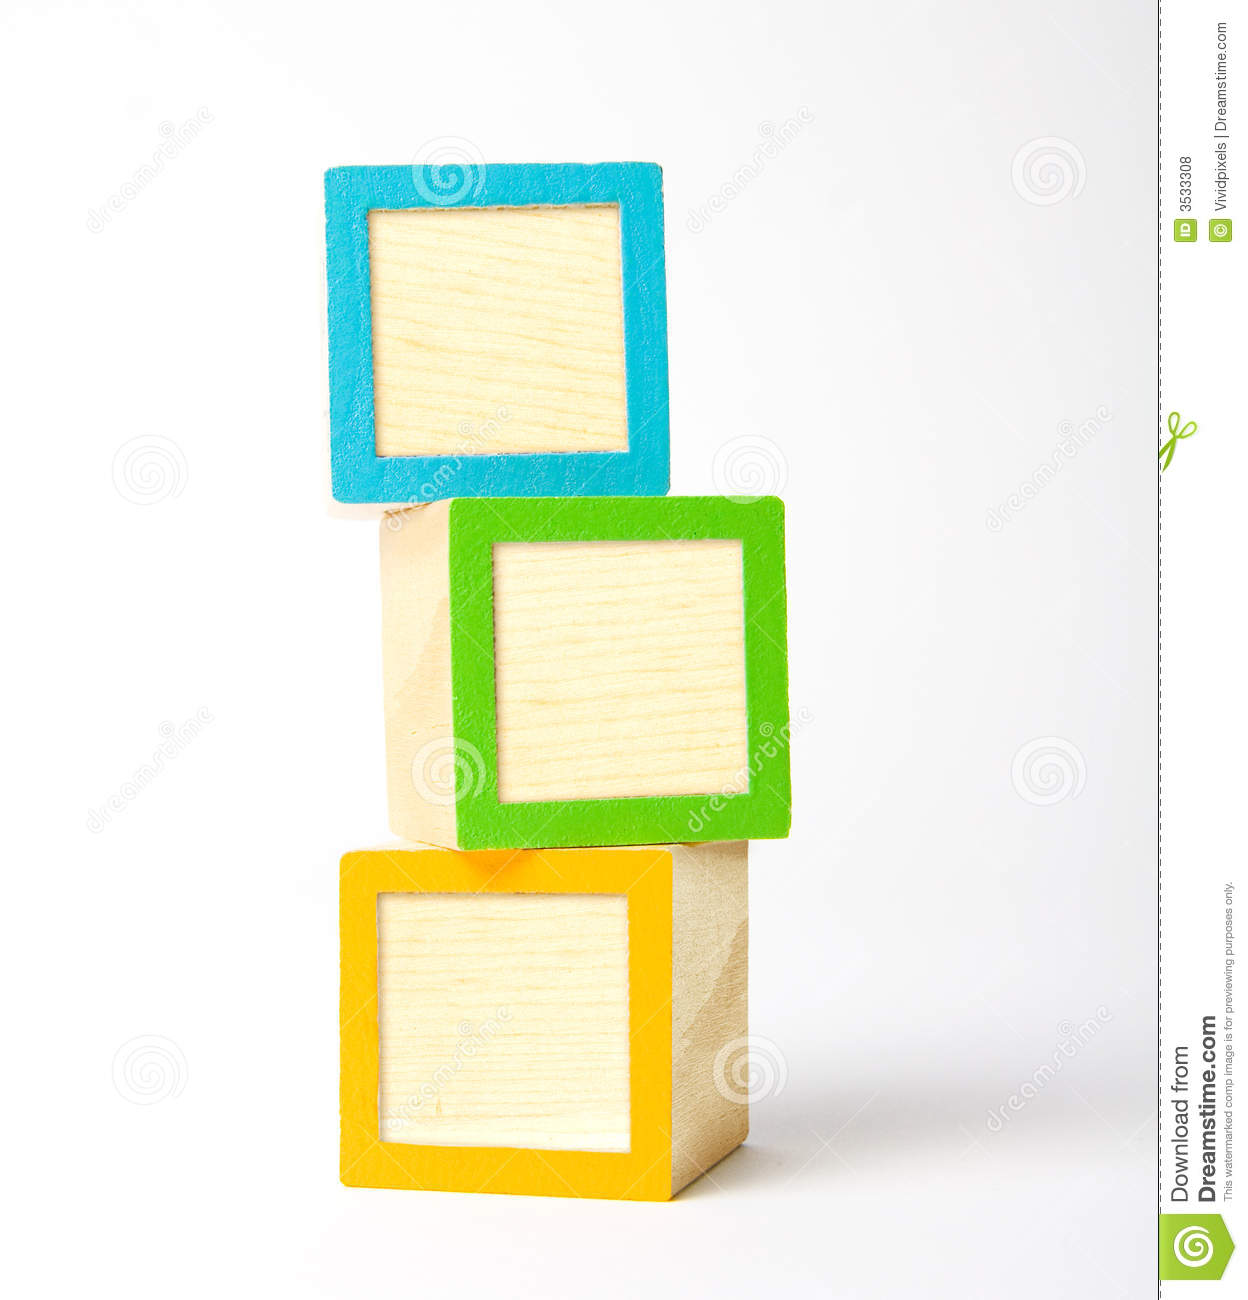 Blocks clipart blank block. Cube pencil and in